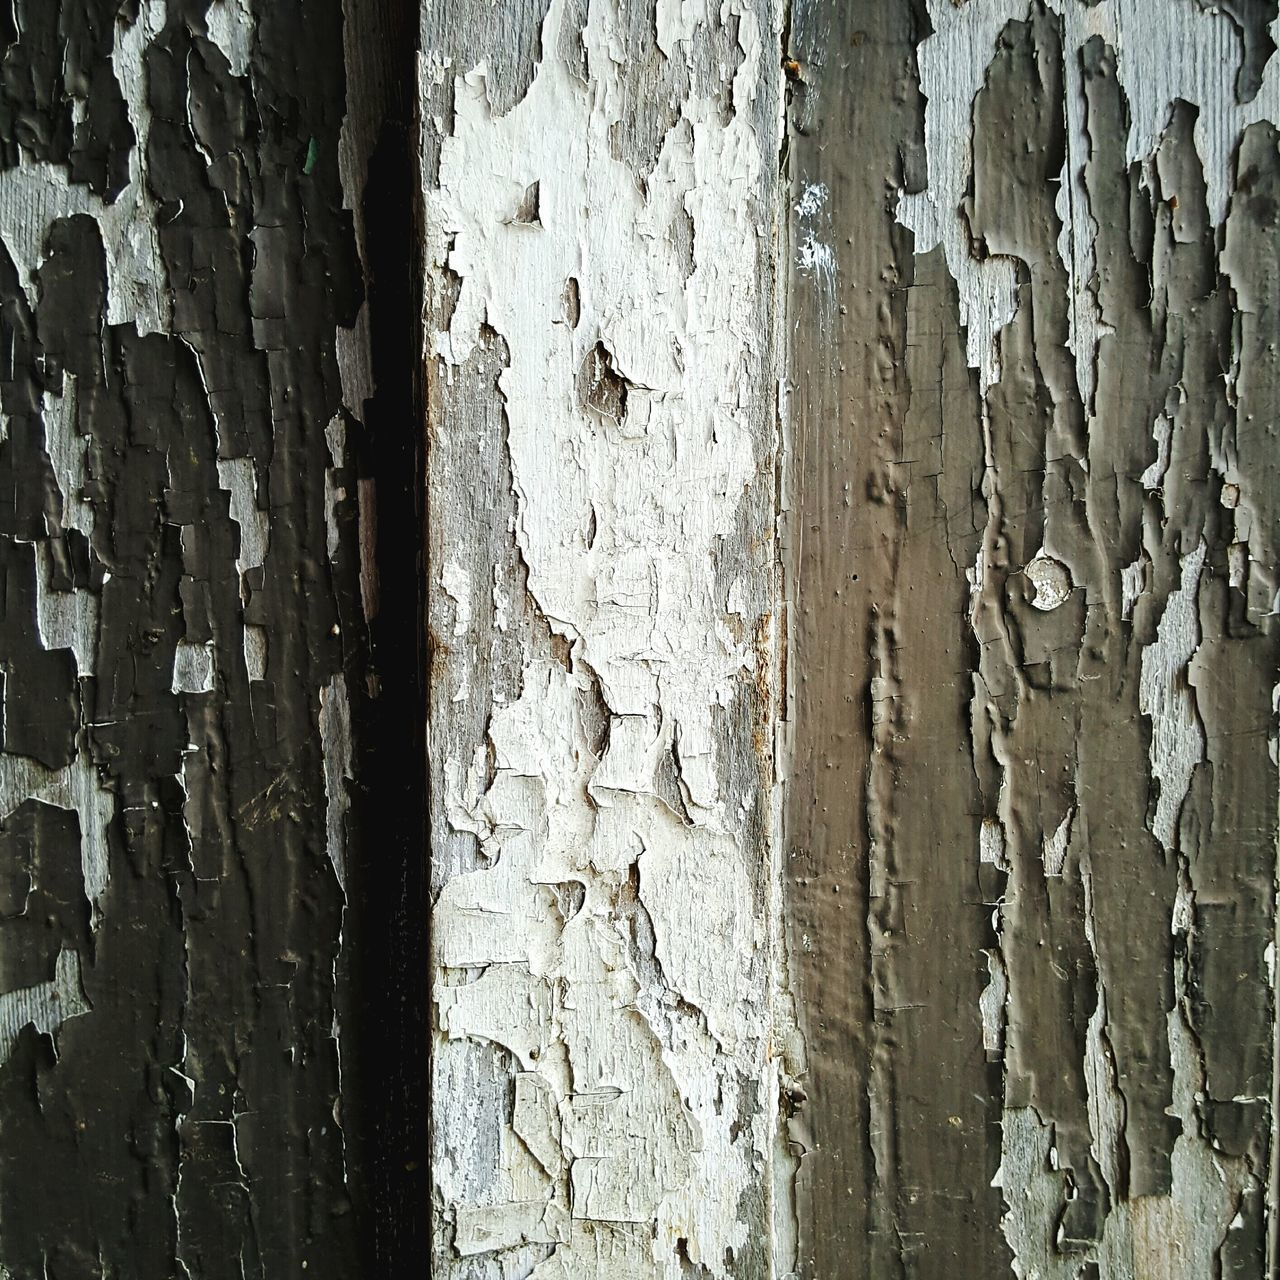 Weathered painted wood Full Frame Backgrounds Textured  Day Weathered Built Structure No People Paint Close-up Architecture Outdoors Vintage Vintage Textured  Pattern Architecture Garden Photography Paint Decay Weathered Building Exterior